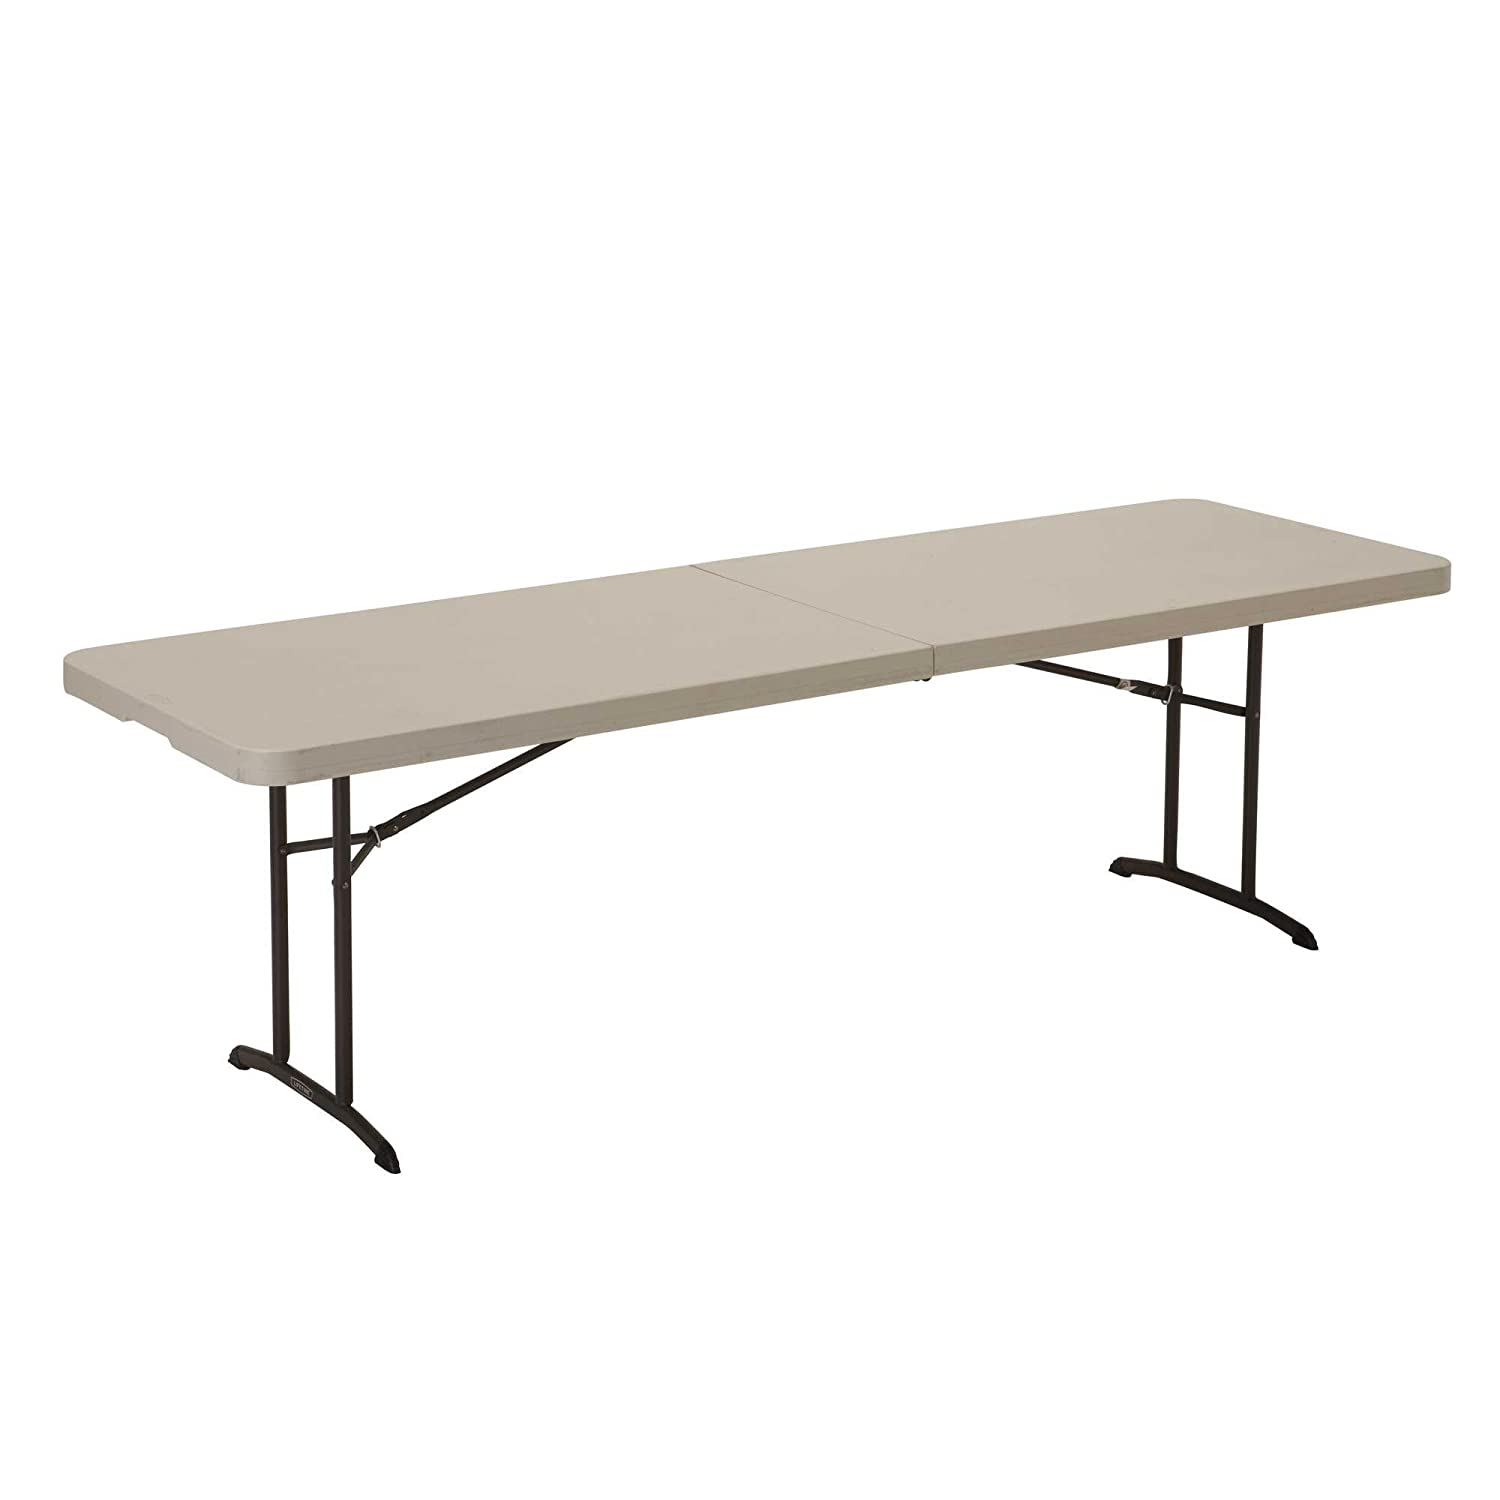 Amazon Lifetime 80175 Fold In Half Banquet Table 8 Feet Almond Patio Lawn Garden